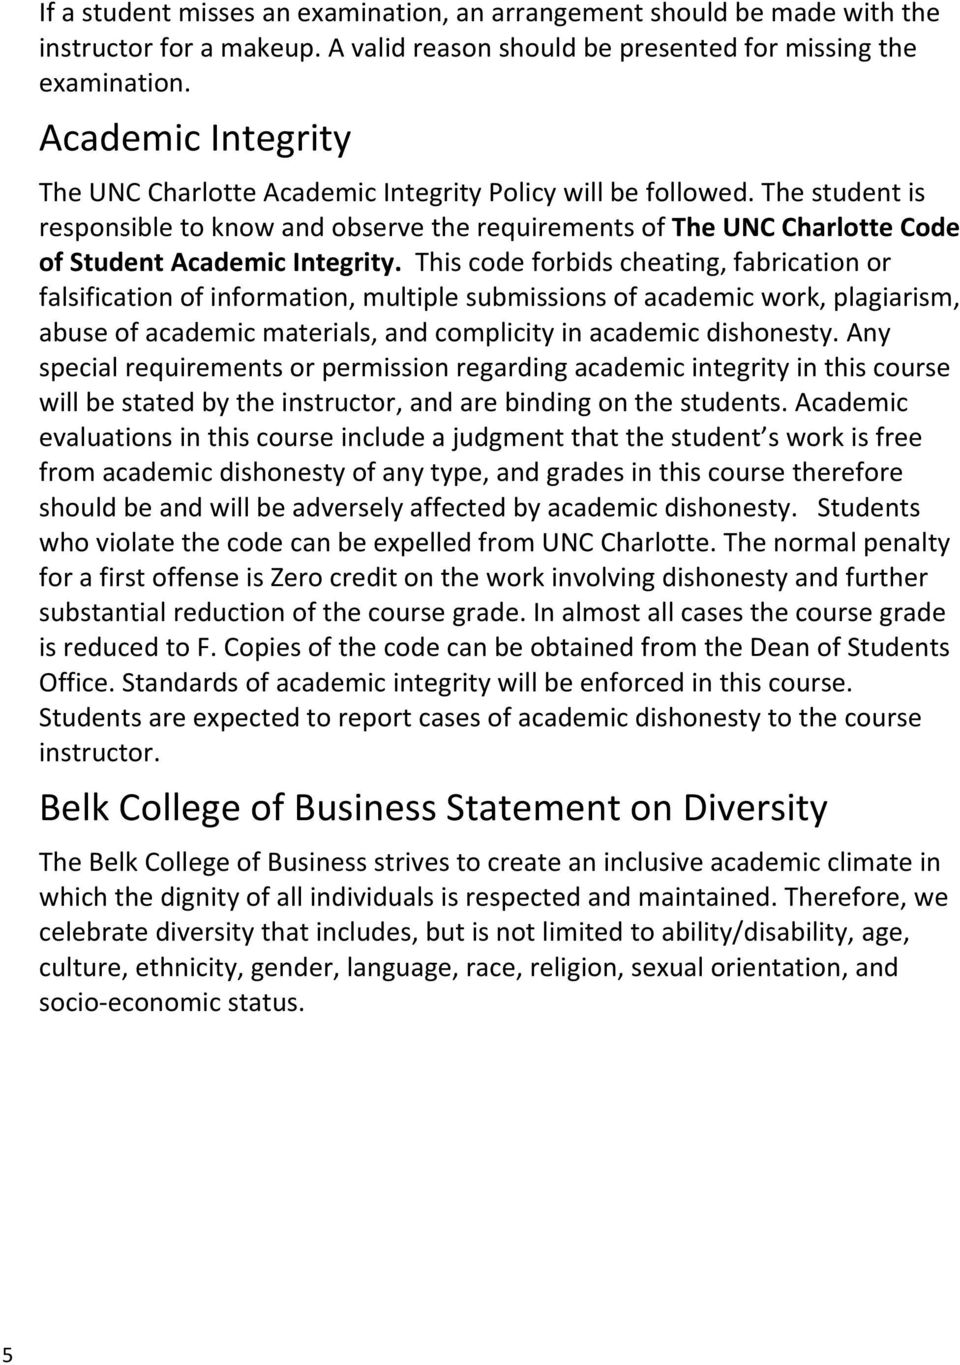 The student is responsible to know and observe the requirements of The UNC Charlotte Code of Student Academic Integrity.